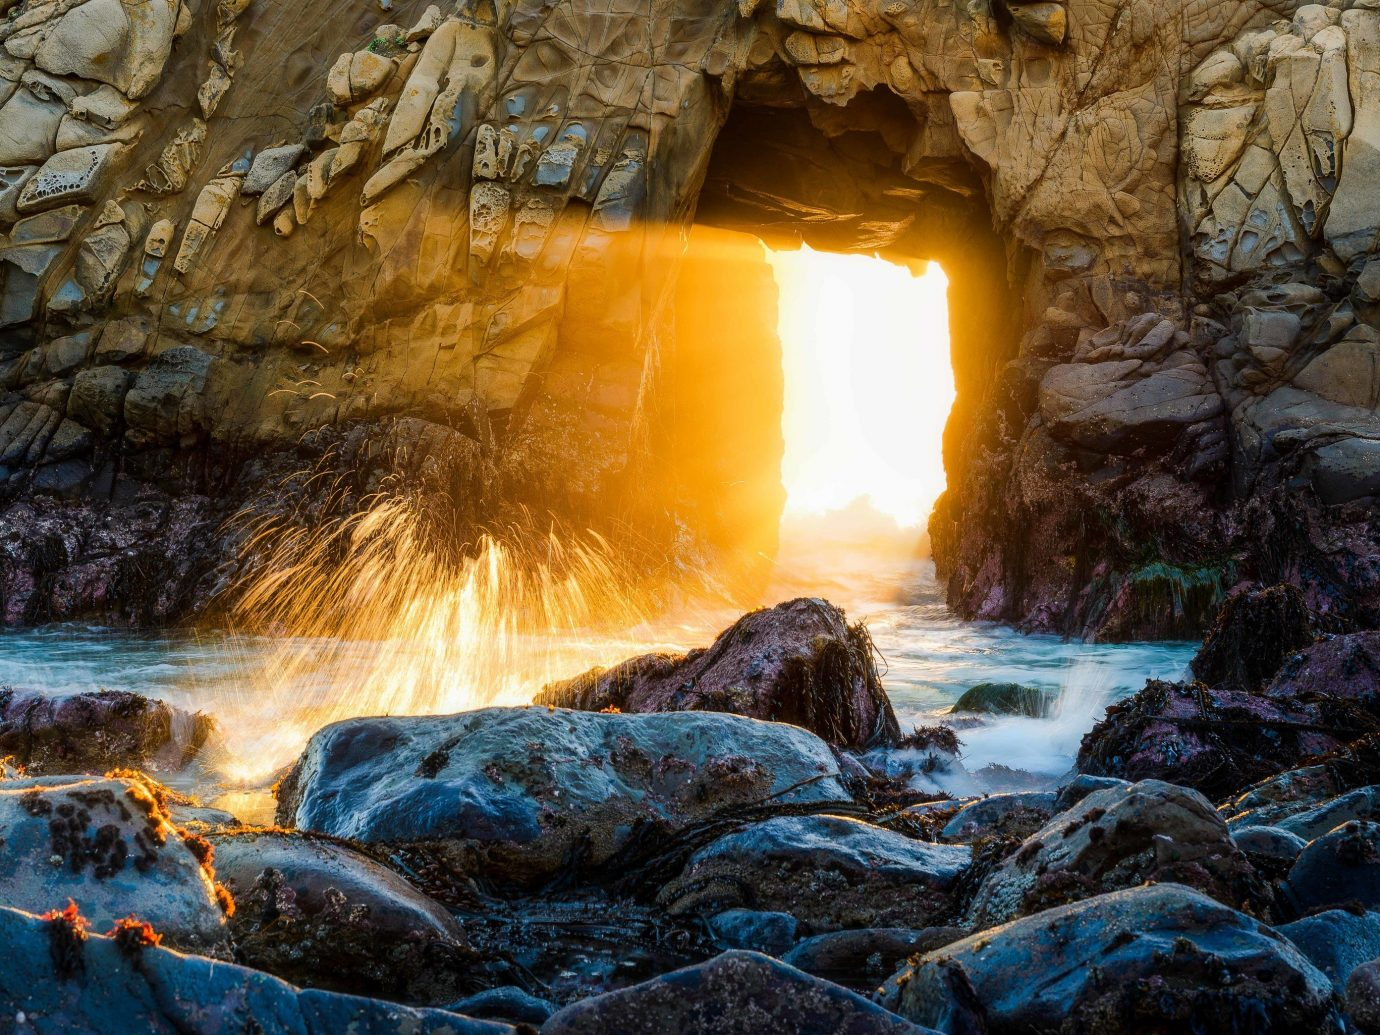 America Beach Trip Ideas West Coast Nature water Waterfall rock water feature formation geological phenomenon sunlight landscape watercourse geology cave stream fluvial landforms of streams computer wallpaper stone